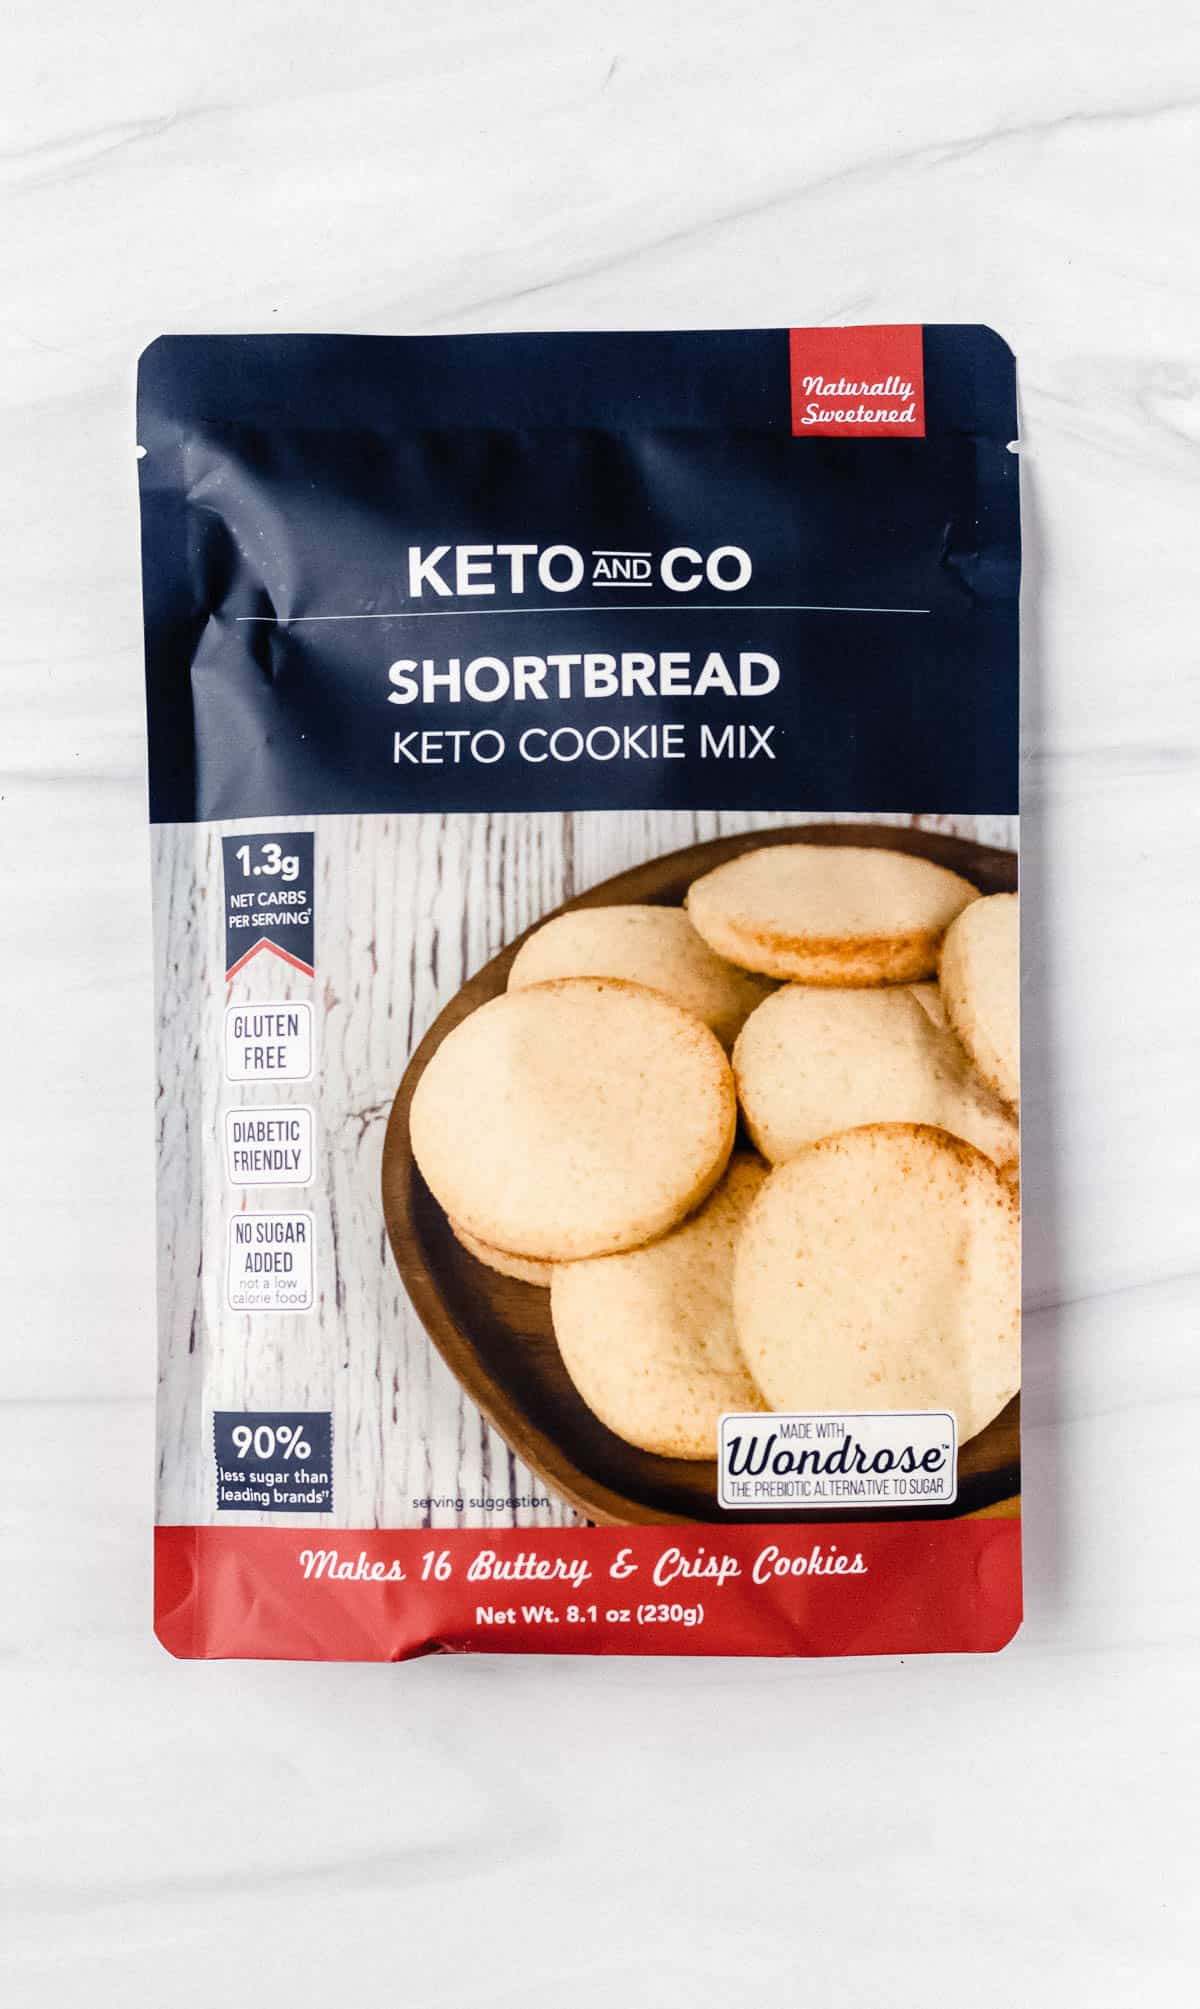 Keto and Co Shortbread Keto Cookie Mix package on a white background